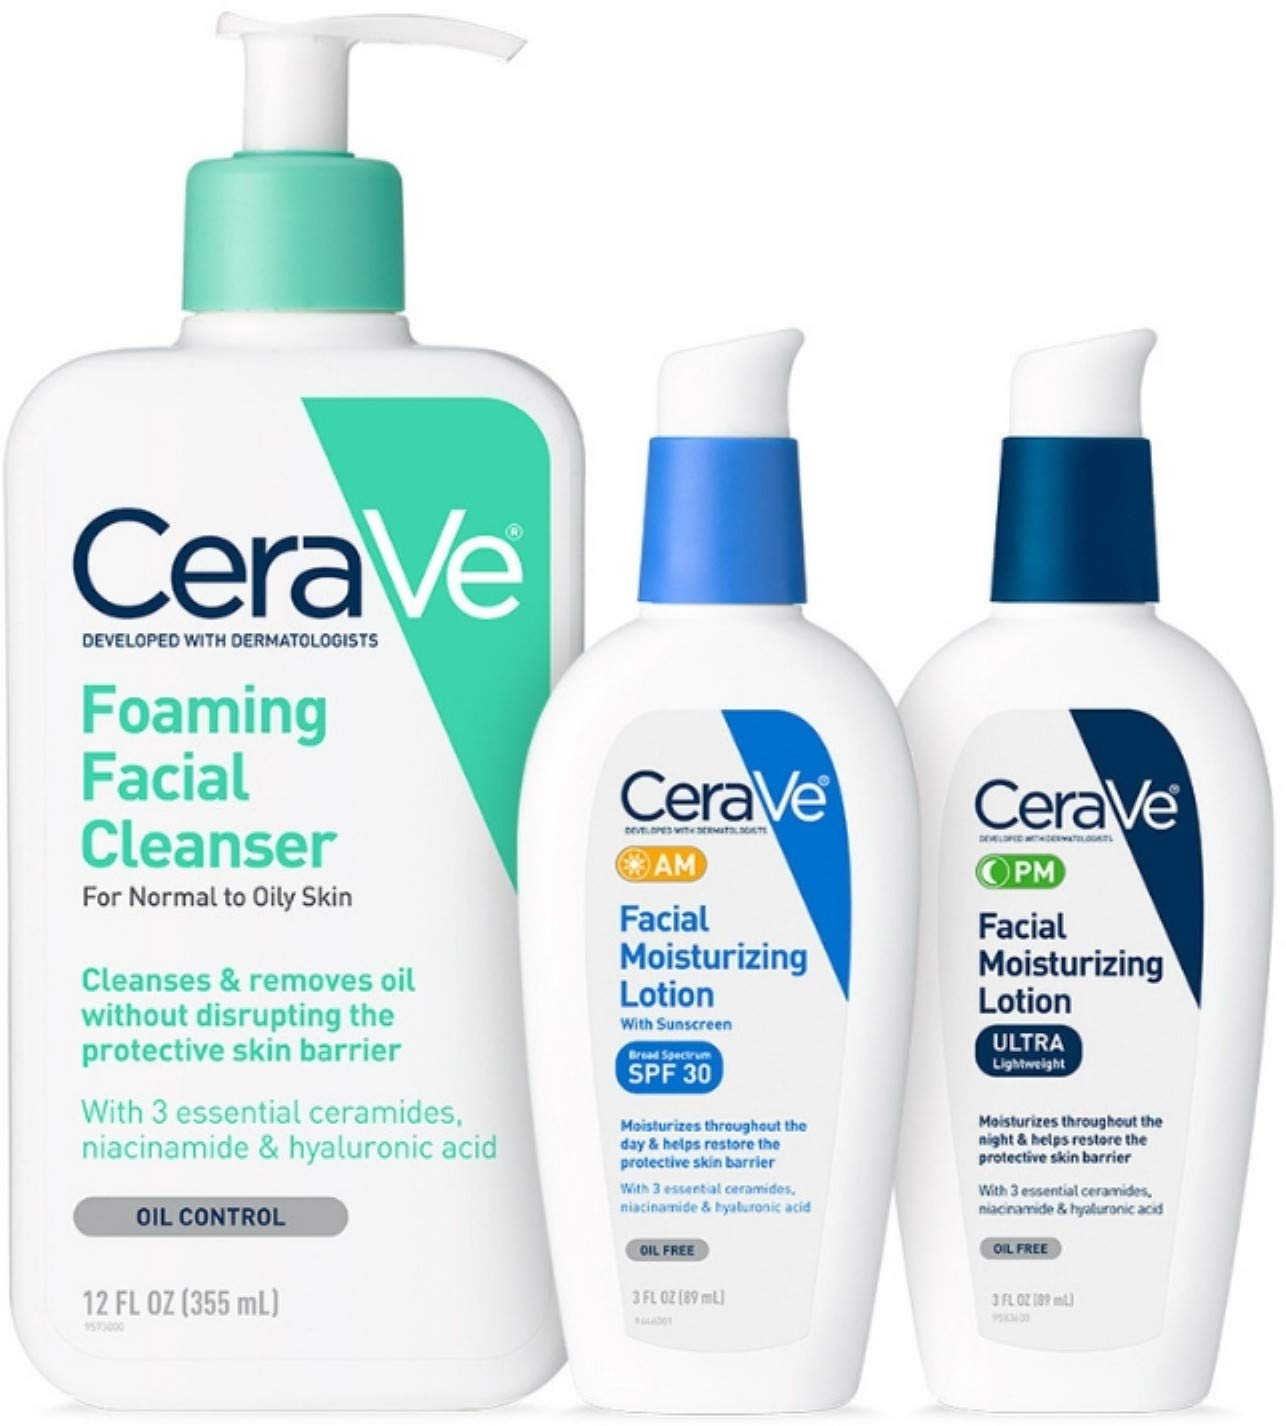 CeraVe Daily Skincare for Oily Skin | Foaming Face Wash, AM Face Moisturizer with SPF 30, and PM Facial Lotion 1 ea